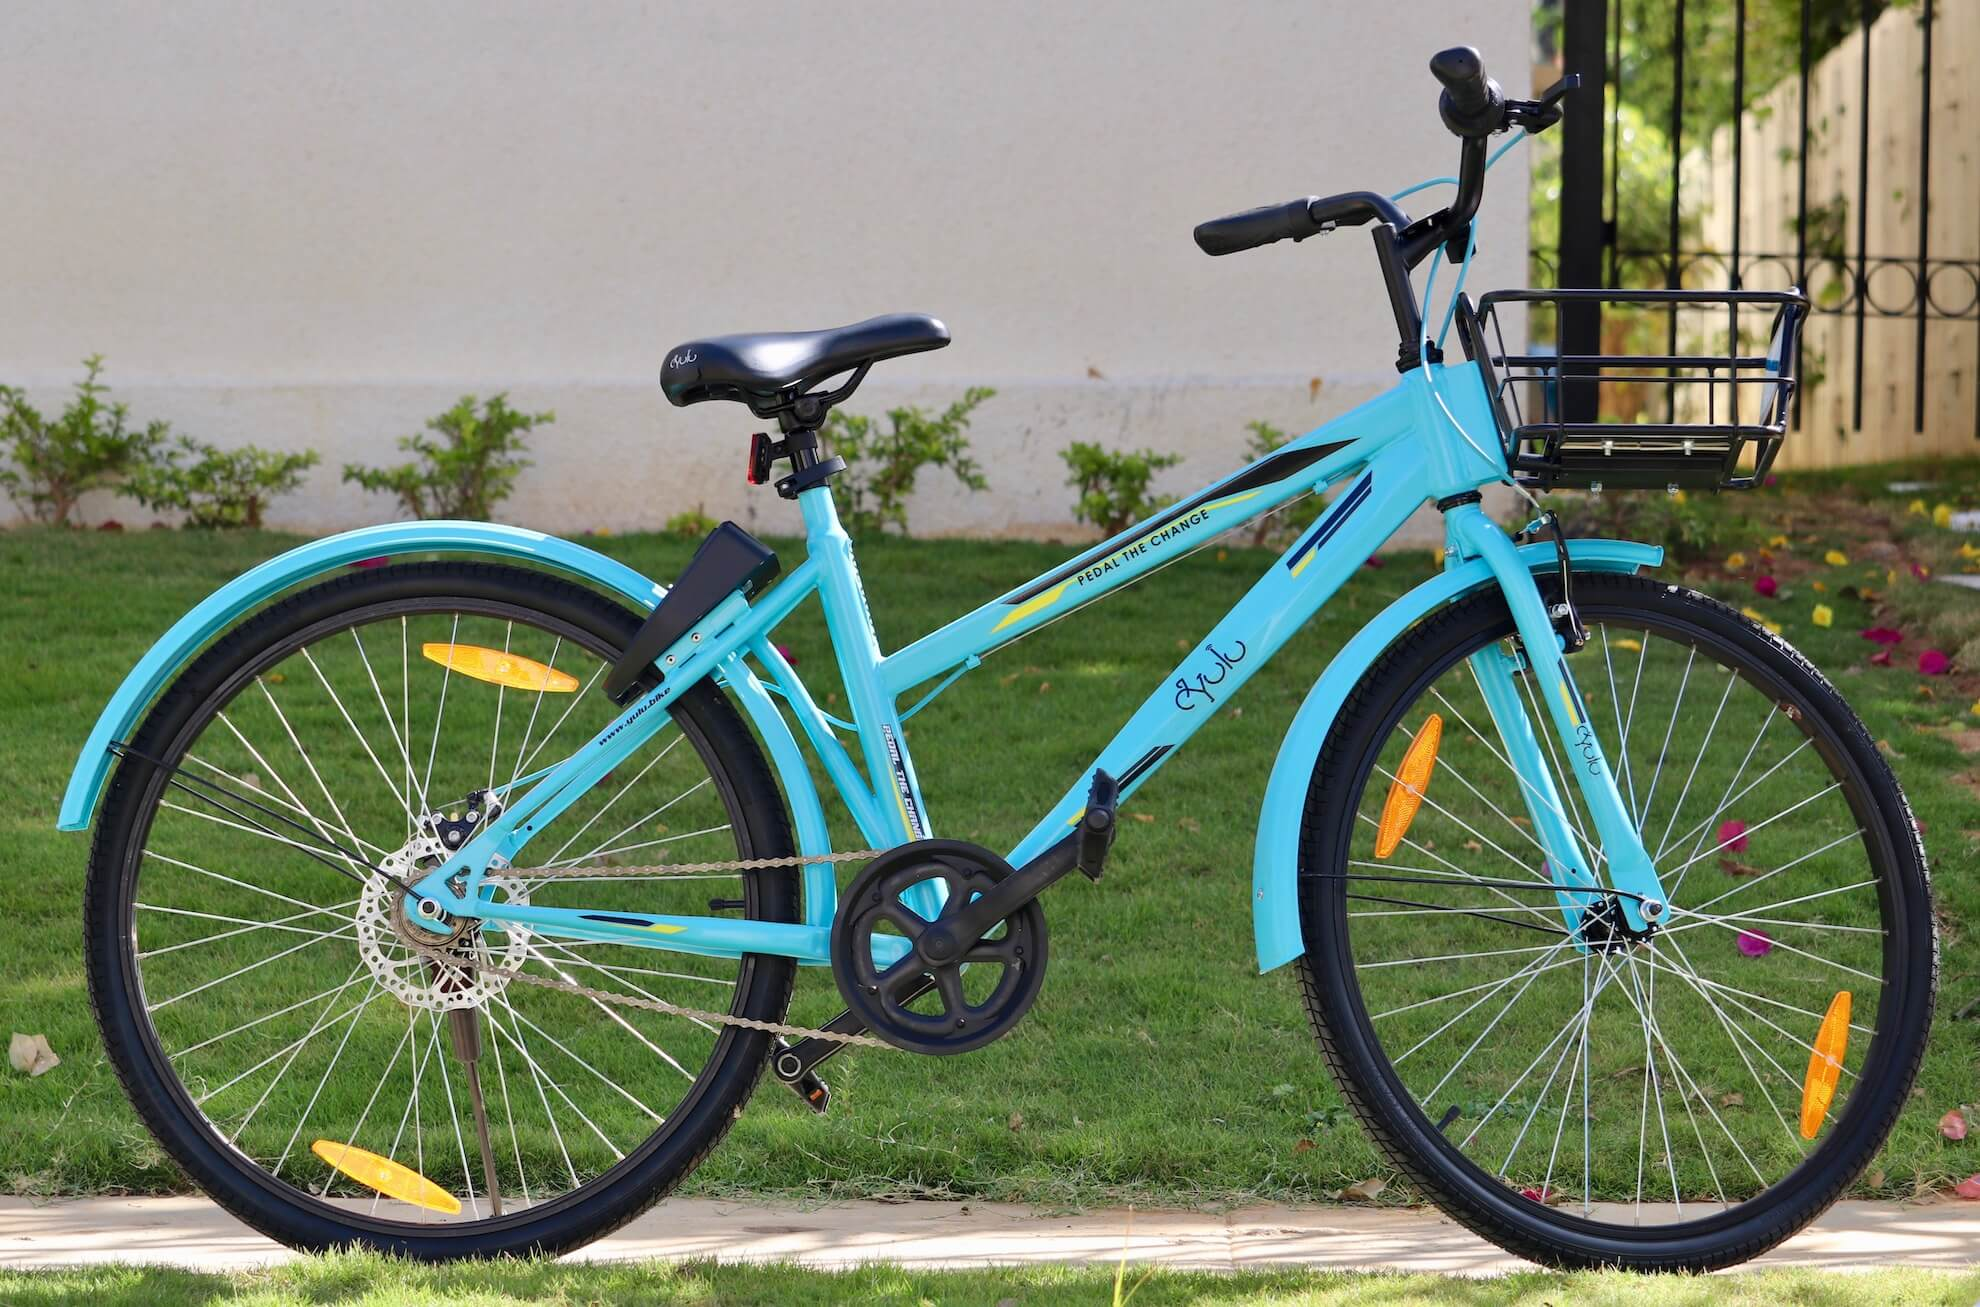 Bicycle rental startup Yulu